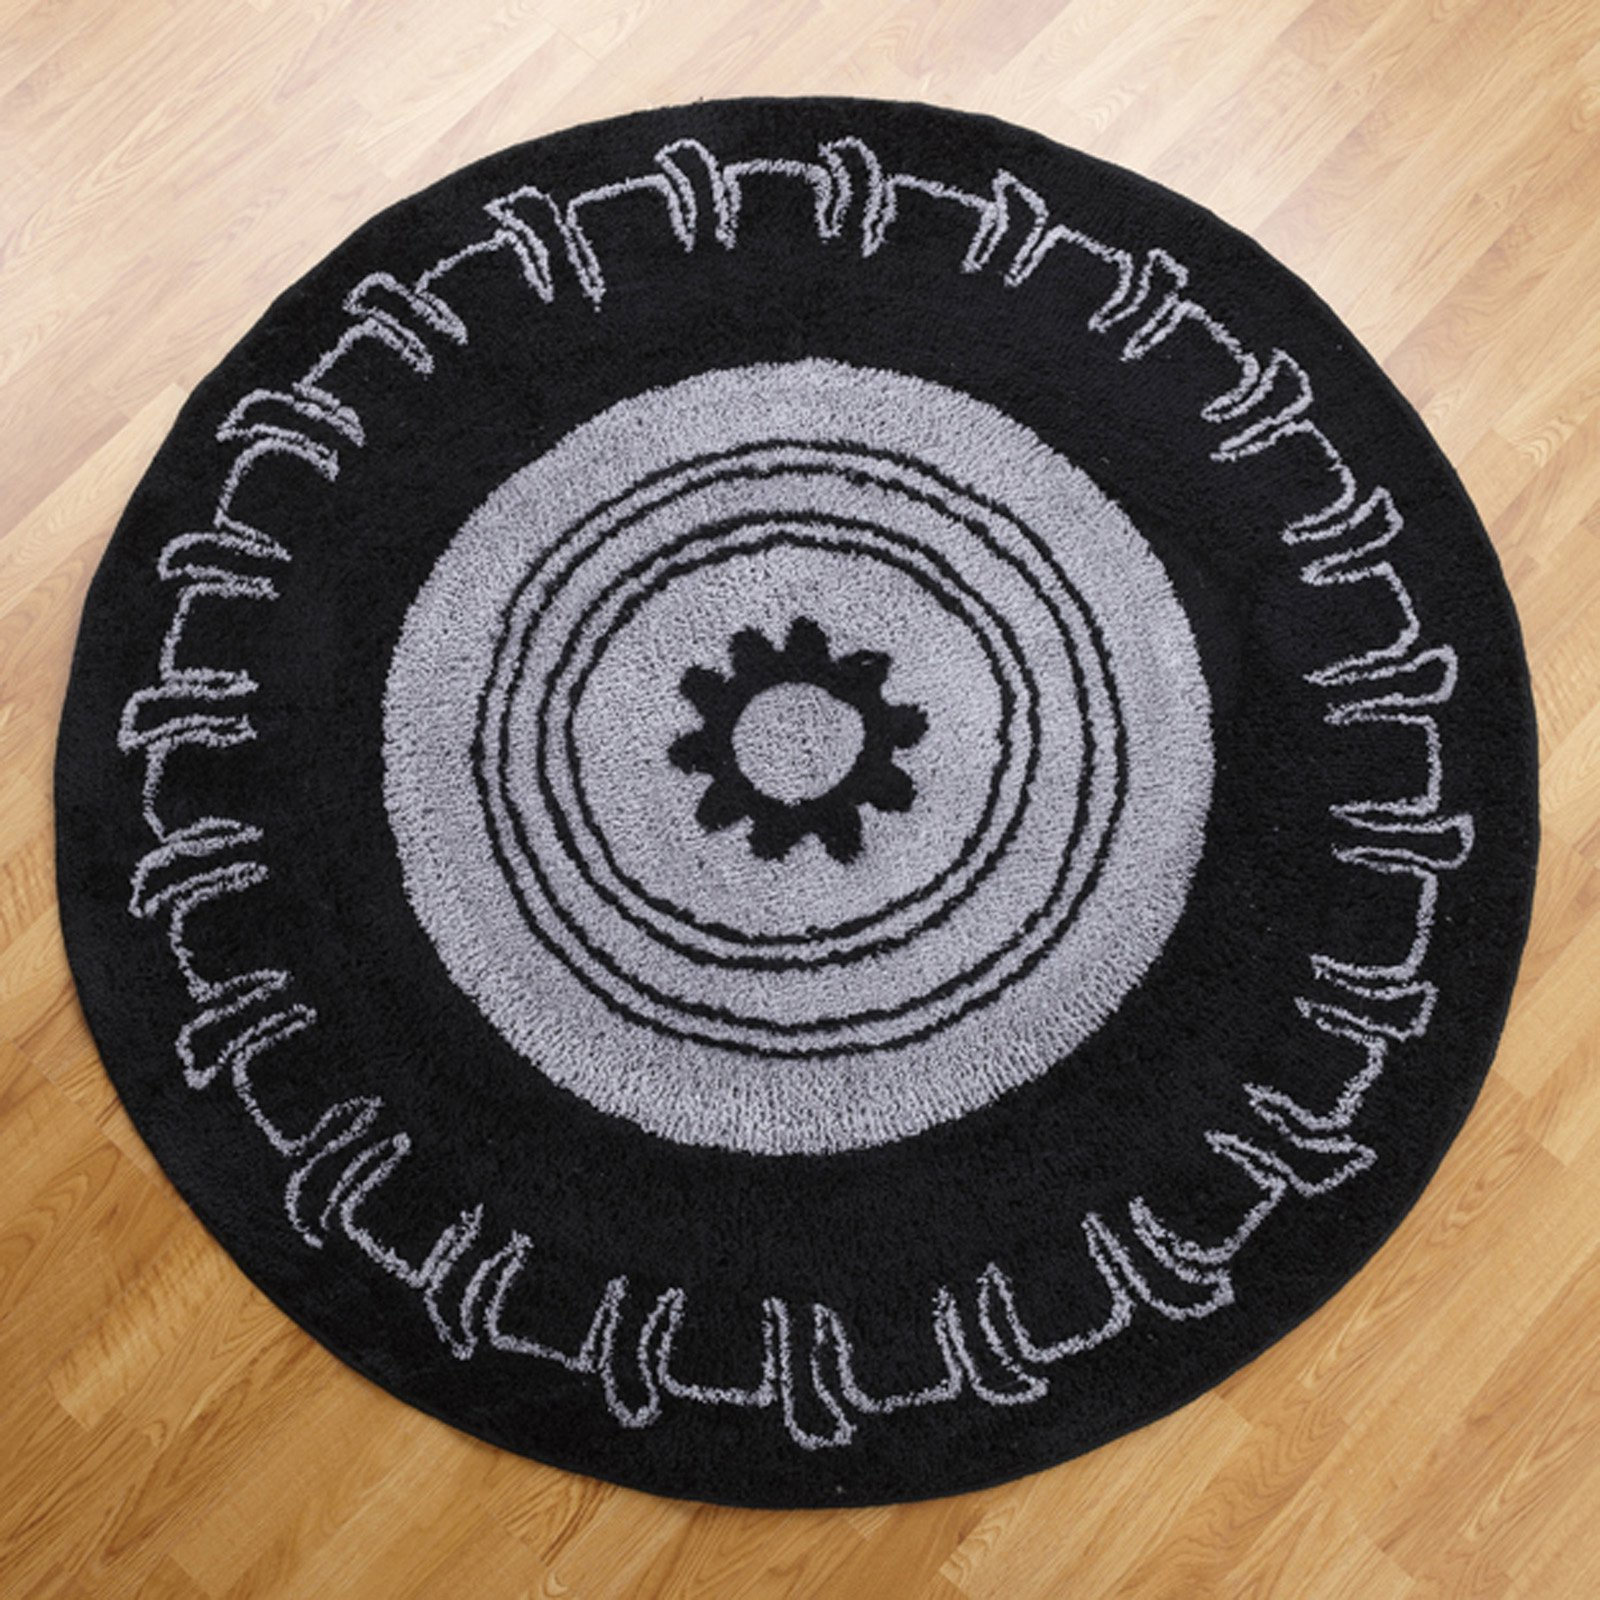 Teyo's Tires 5 ft. Round Rug